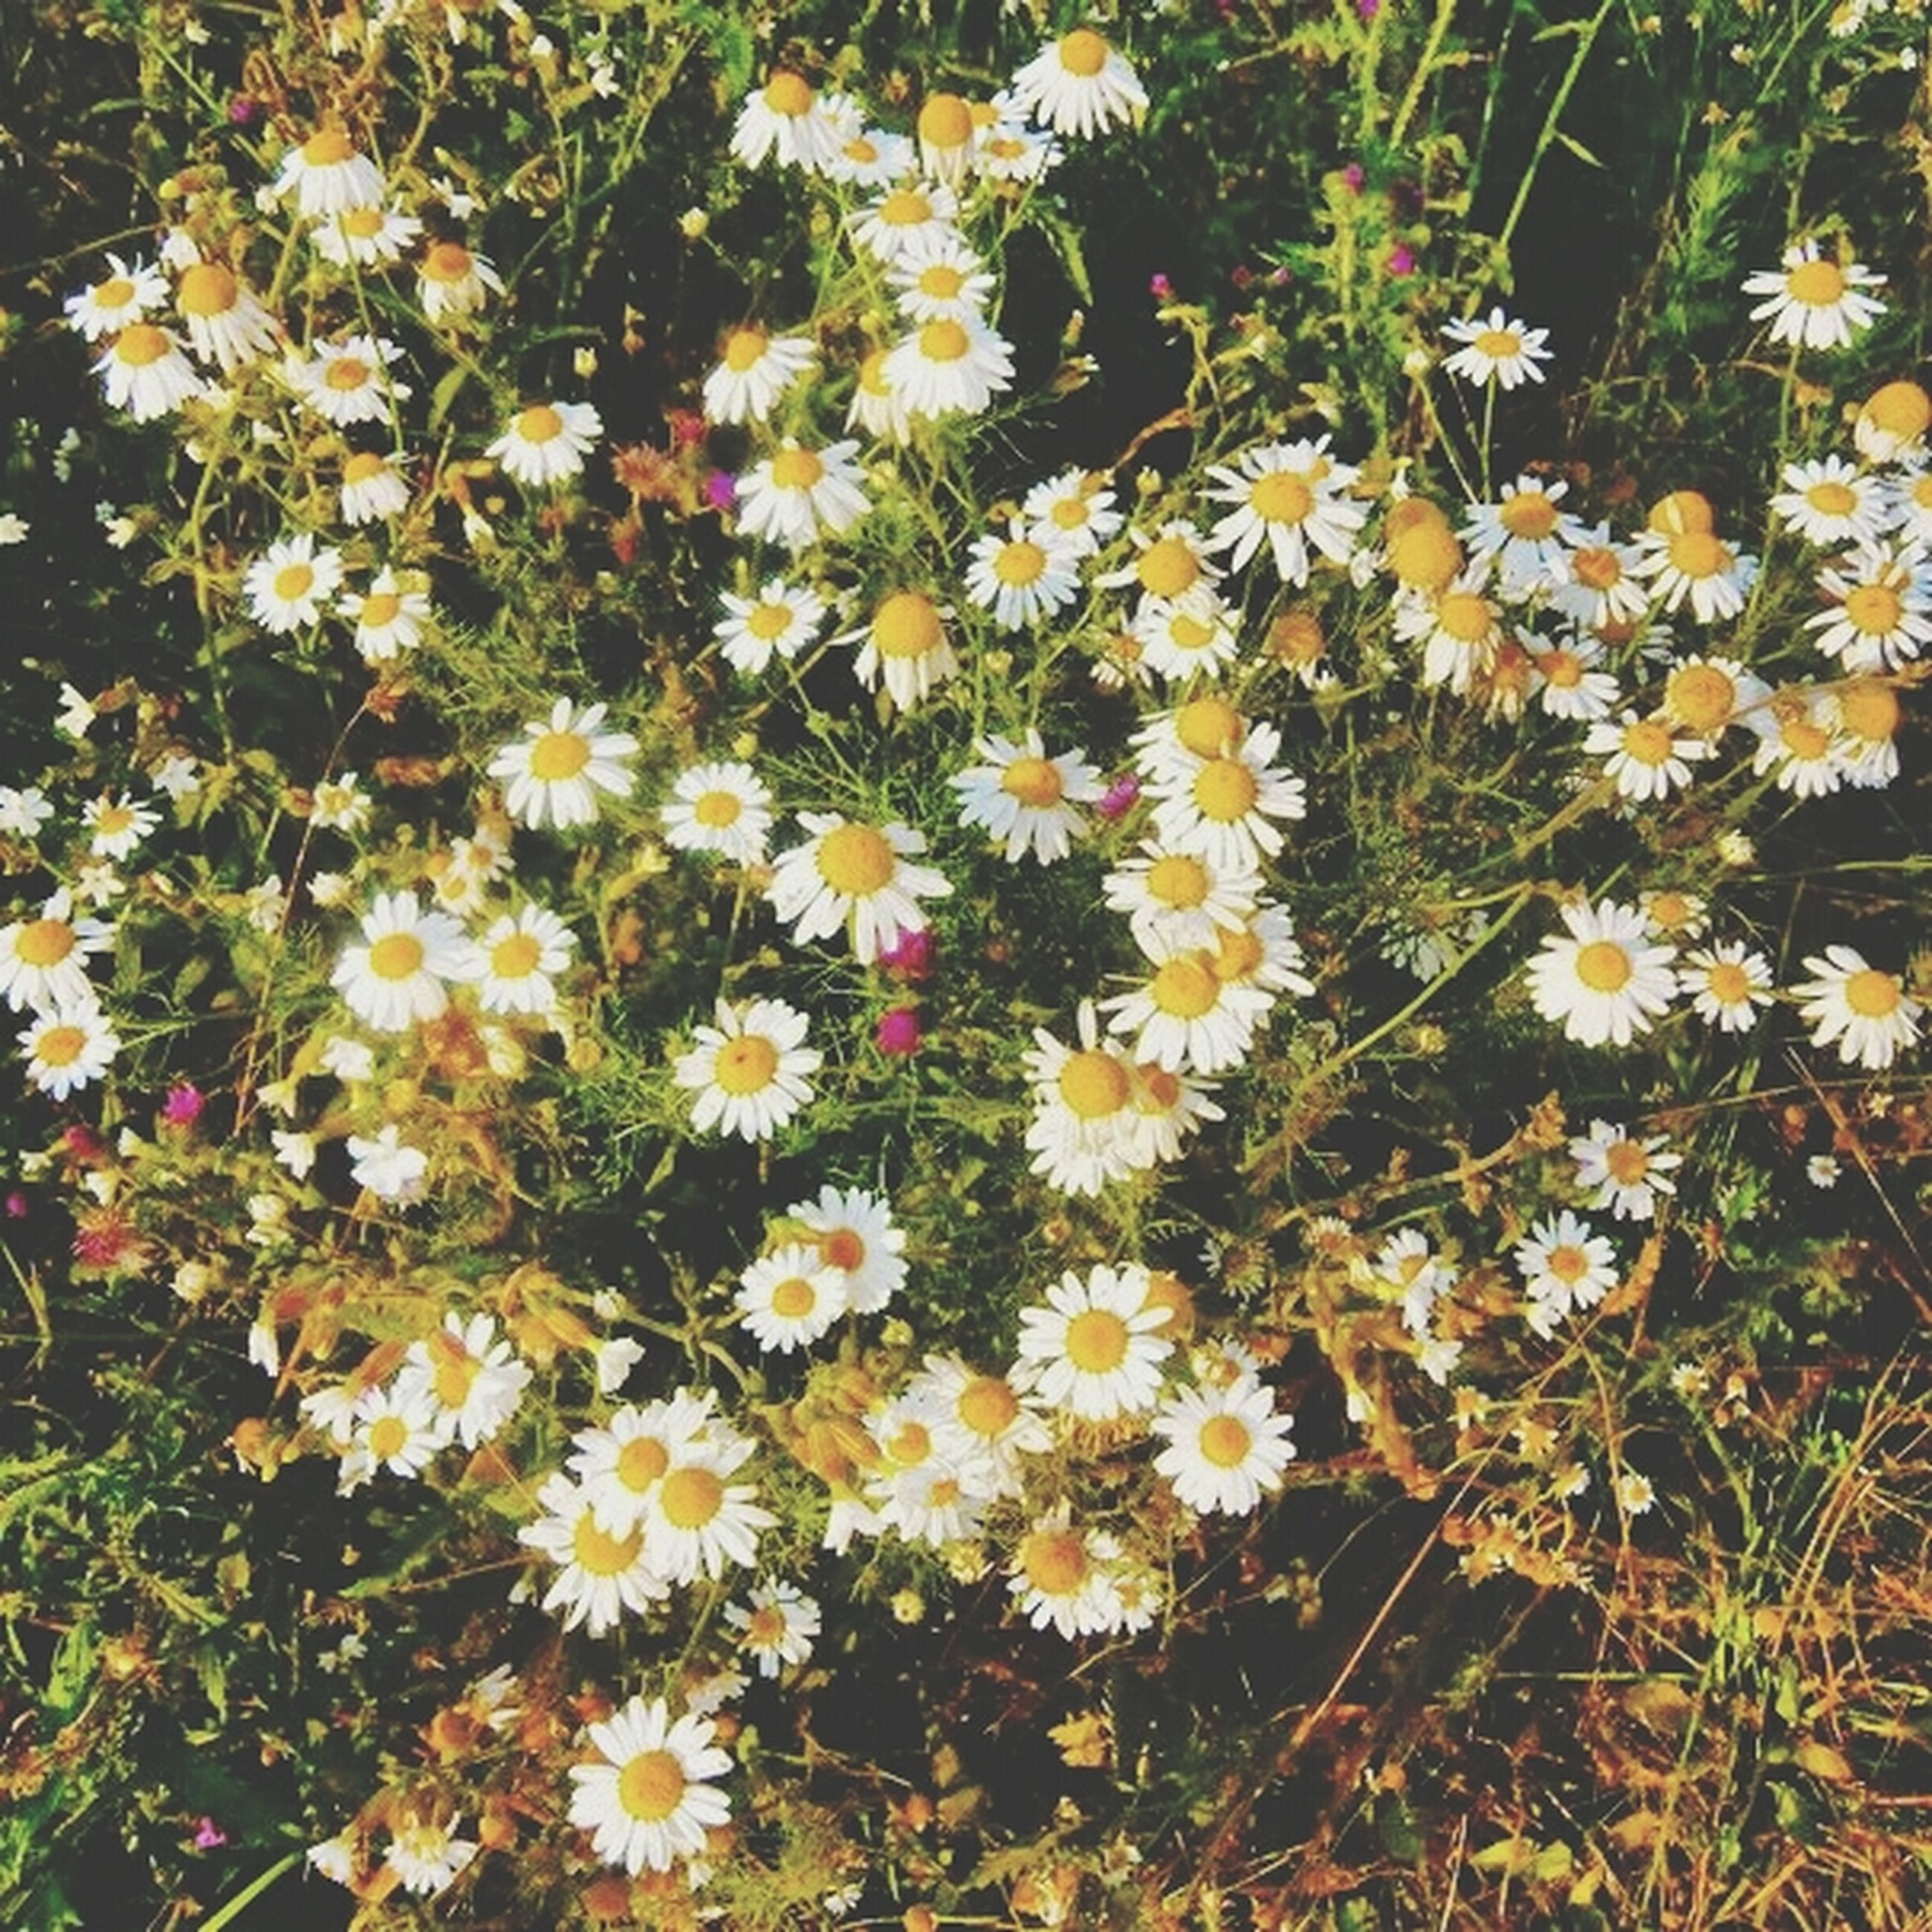 flower, growth, freshness, fragility, petal, white color, high angle view, plant, beauty in nature, daisy, blooming, nature, flower head, field, in bloom, outdoors, day, wildflower, no people, abundance